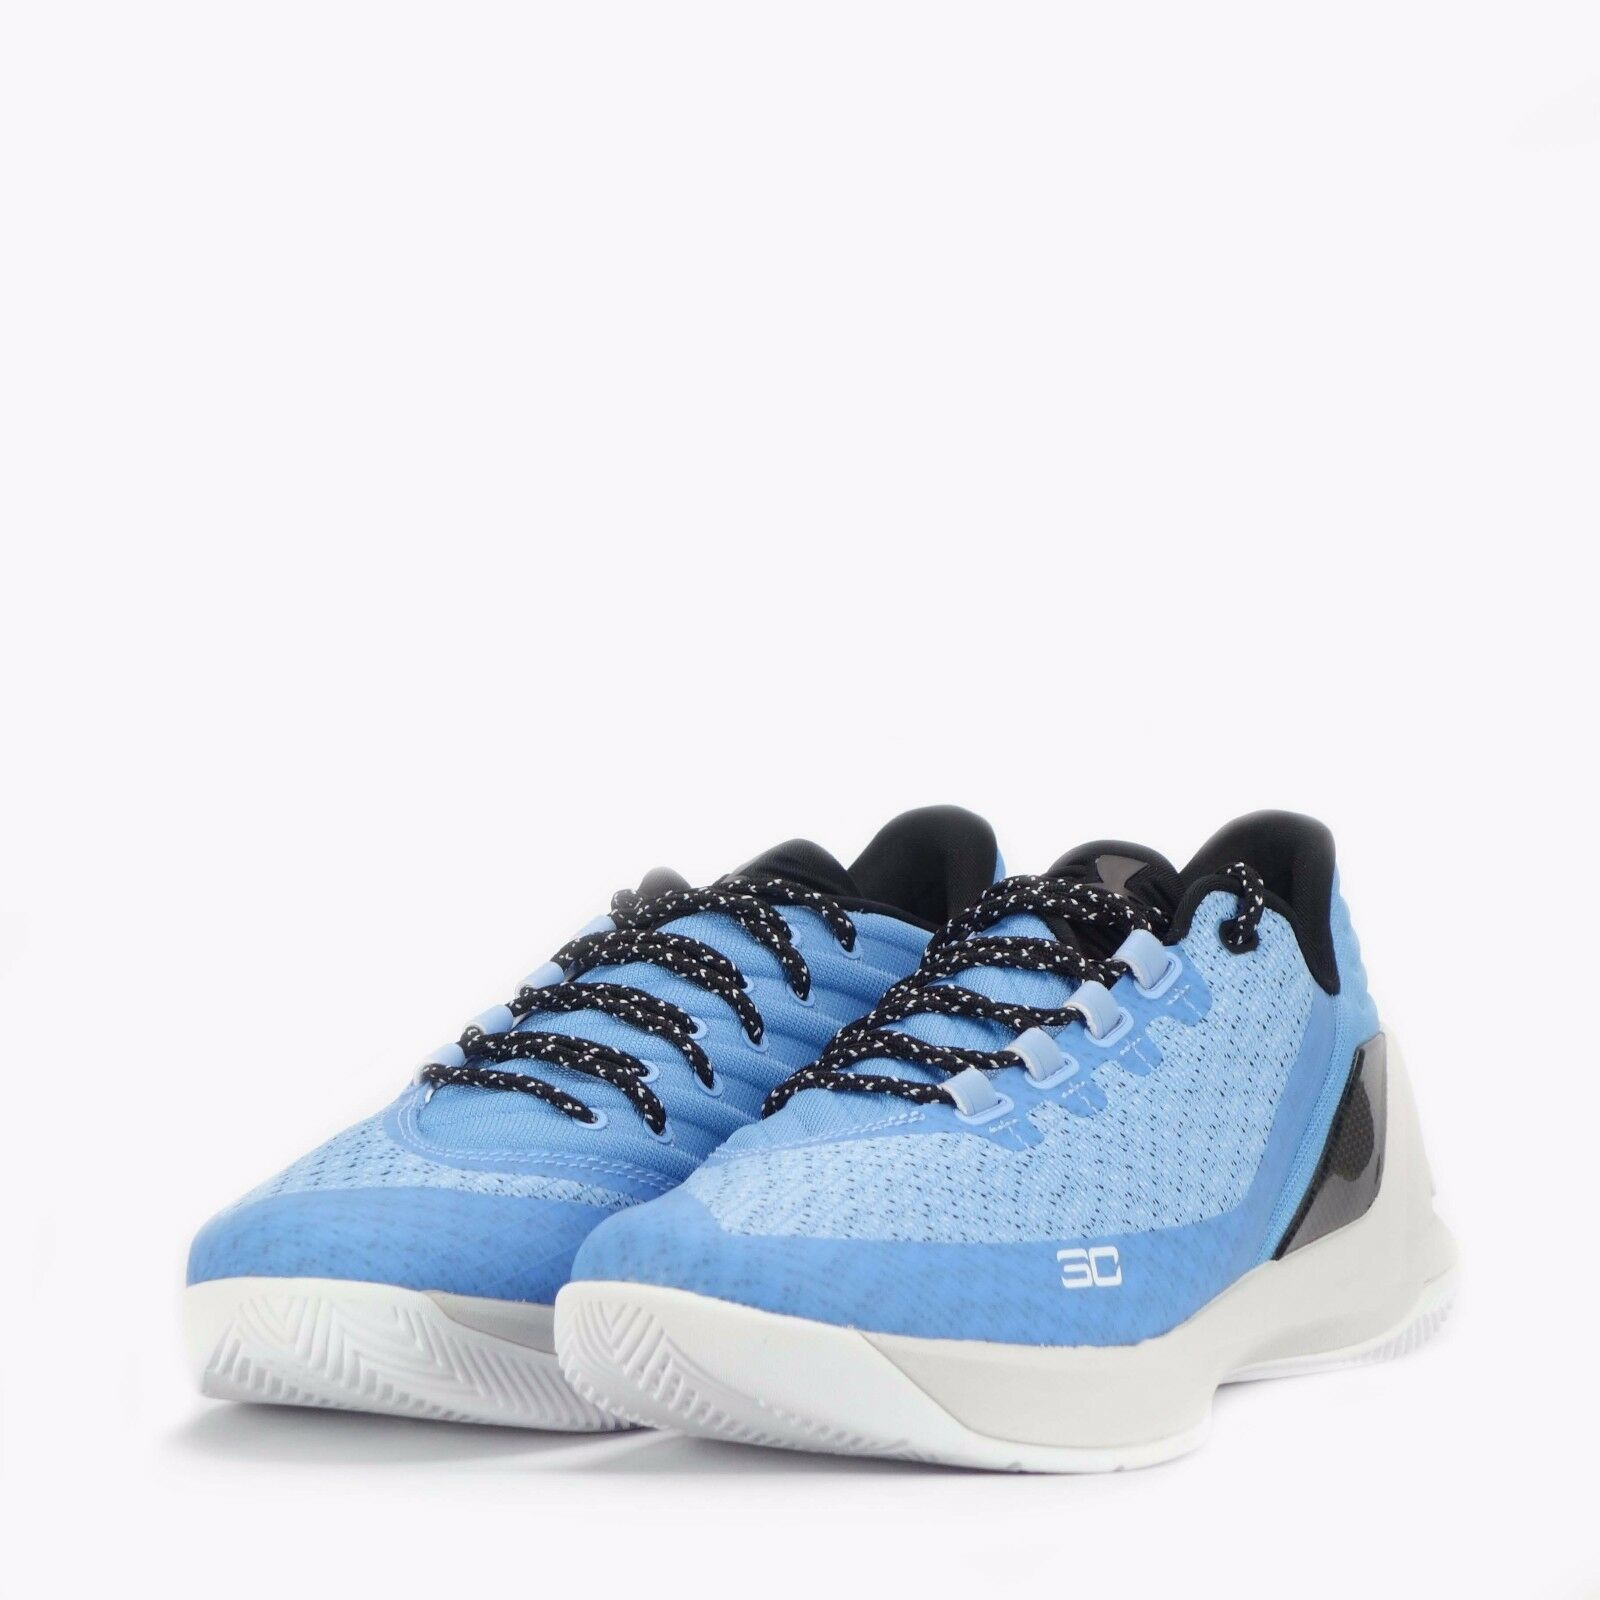 Under Armour Armour Armour Curry 3 Low  Queensway  Mens Basketball schuhe in Blau-Glacier 8f988d